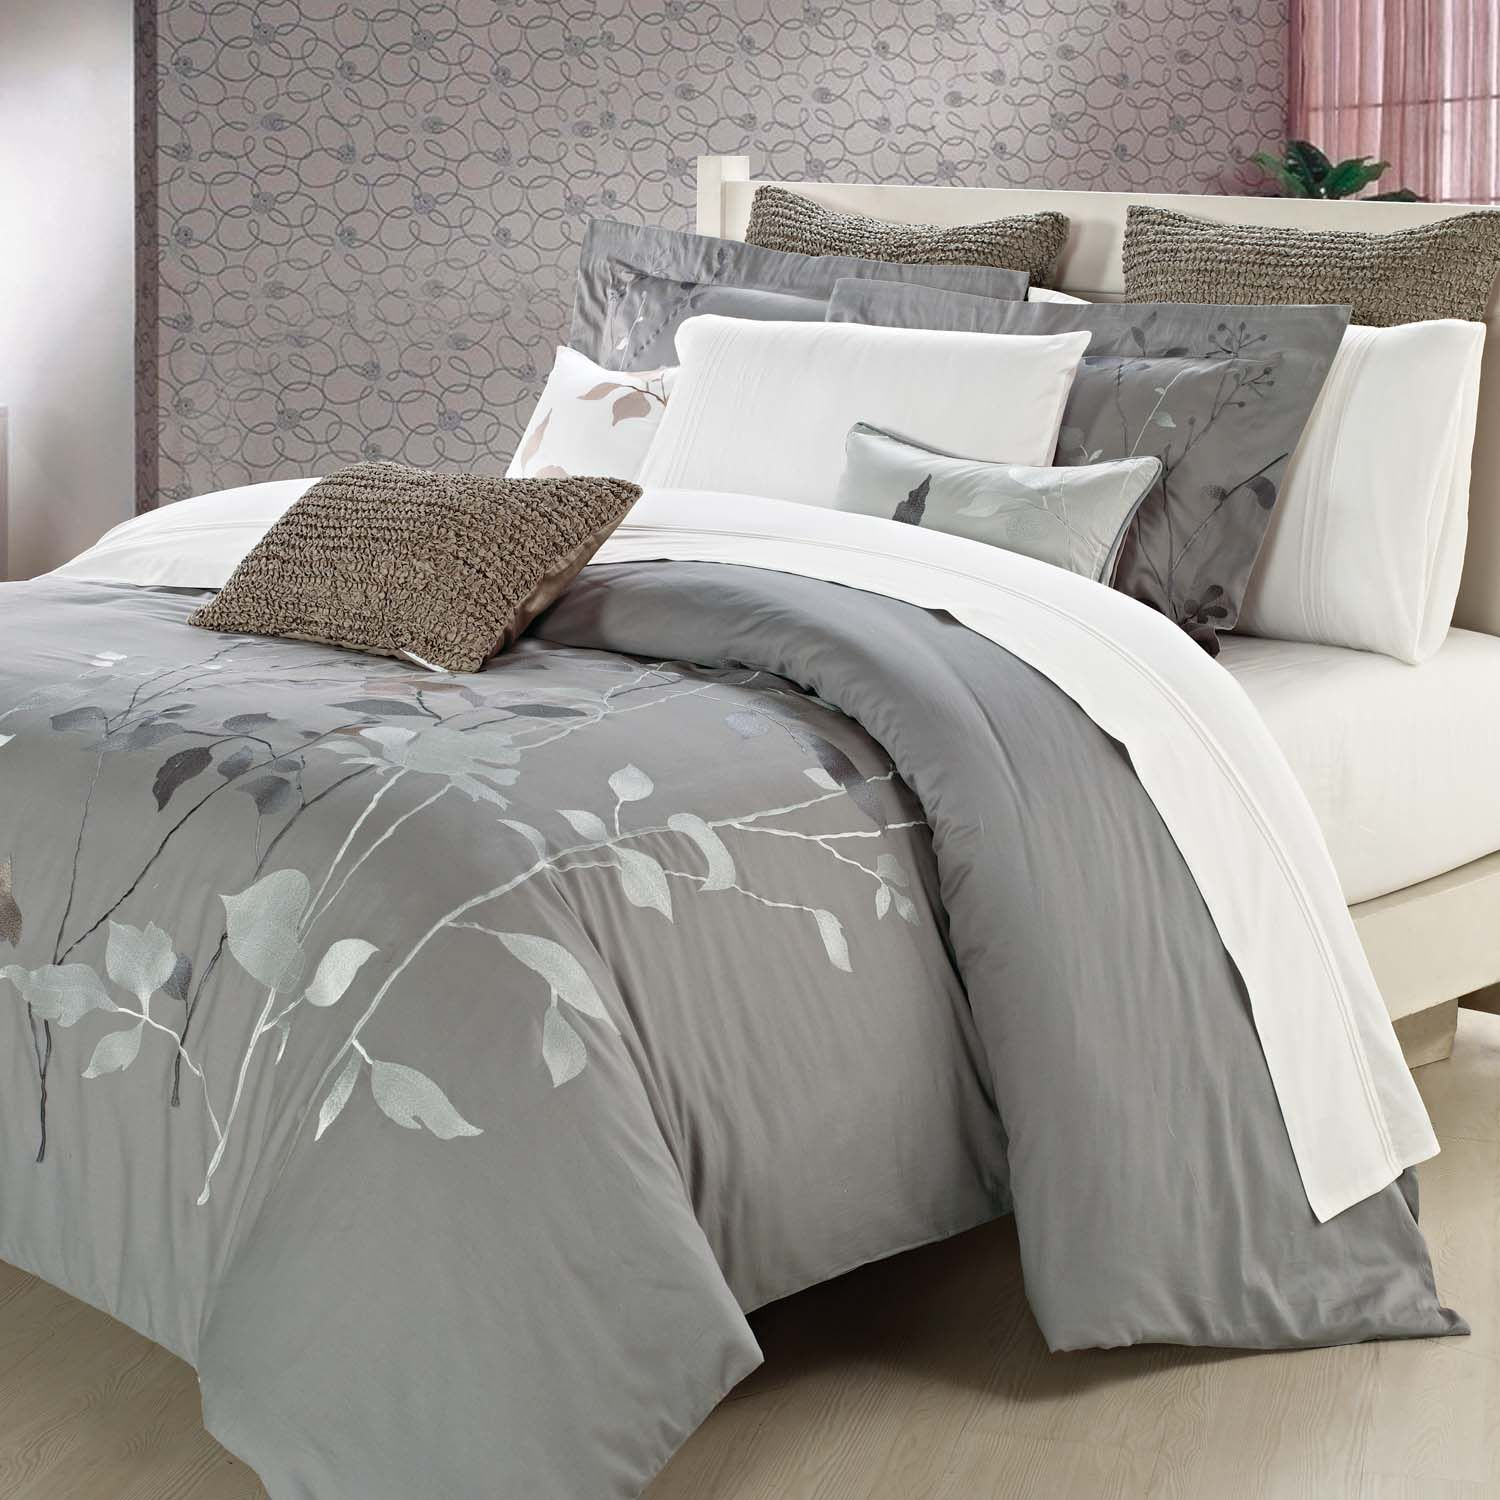 Wonderful Bedroom Pillow Sets With Beautiful Pillows And Elegant Bed Also Modern